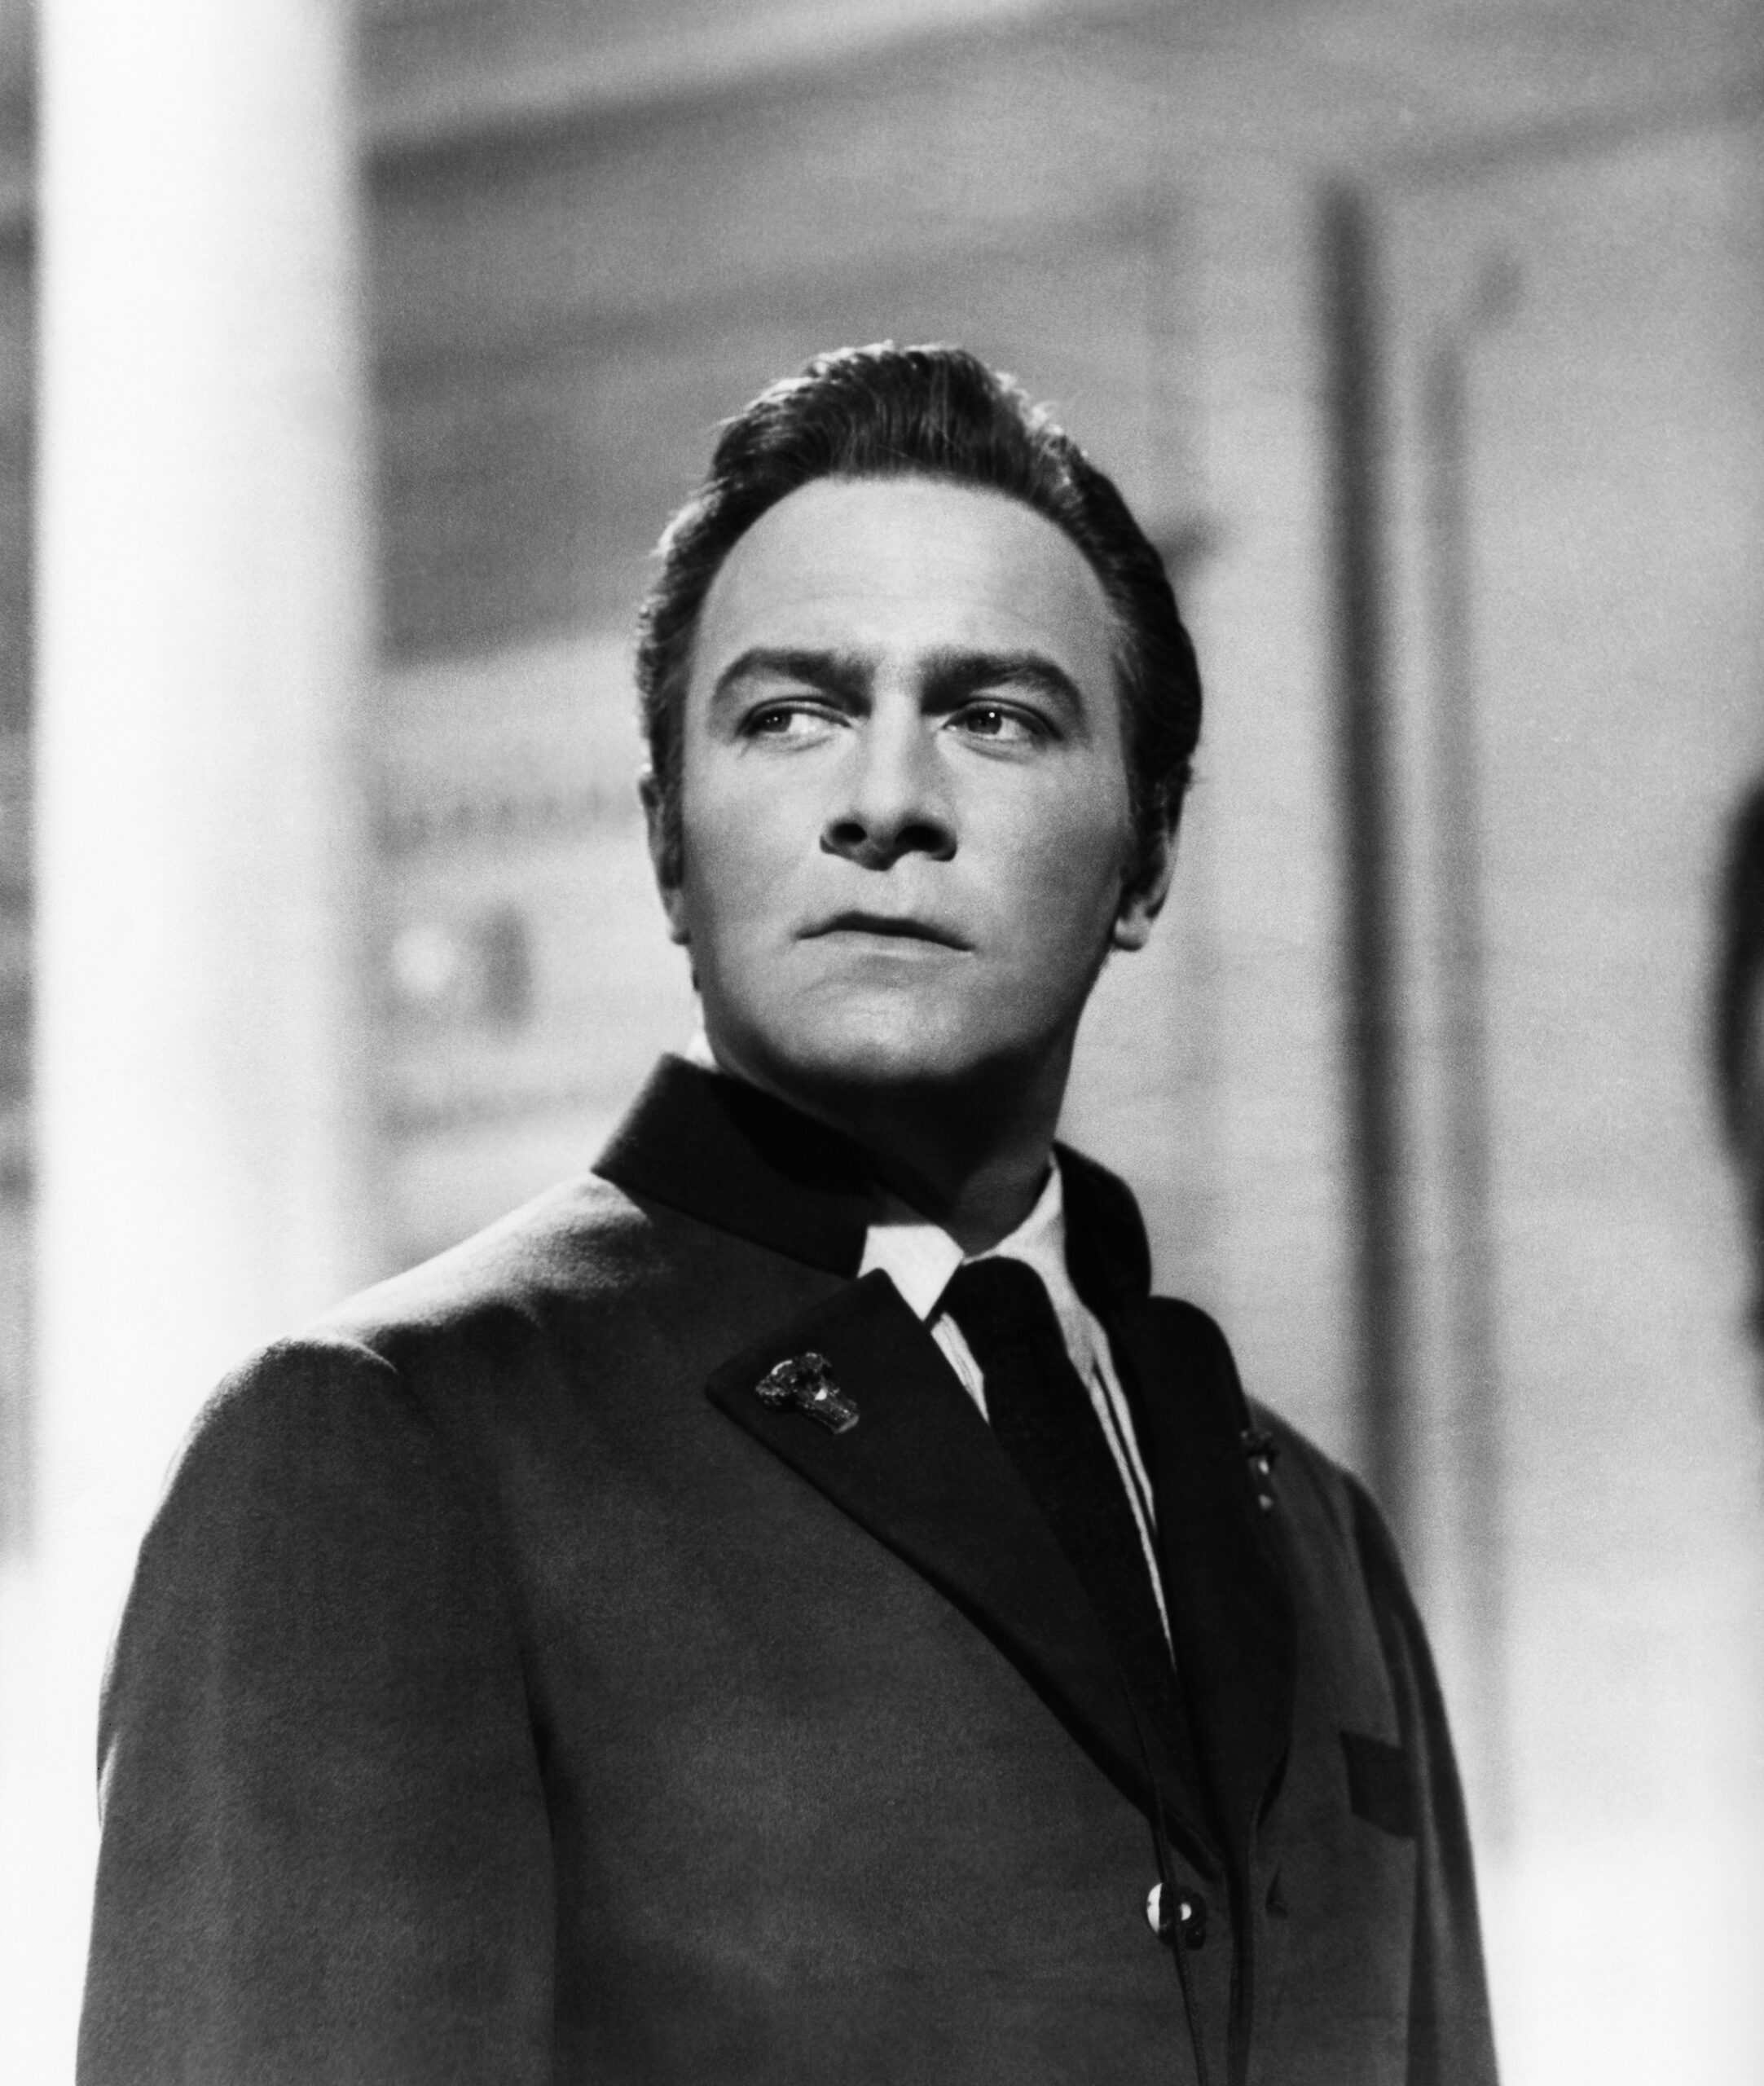 'The Sound Of Music': Christopher Plummer's After-Hours Festivities With The Nuns